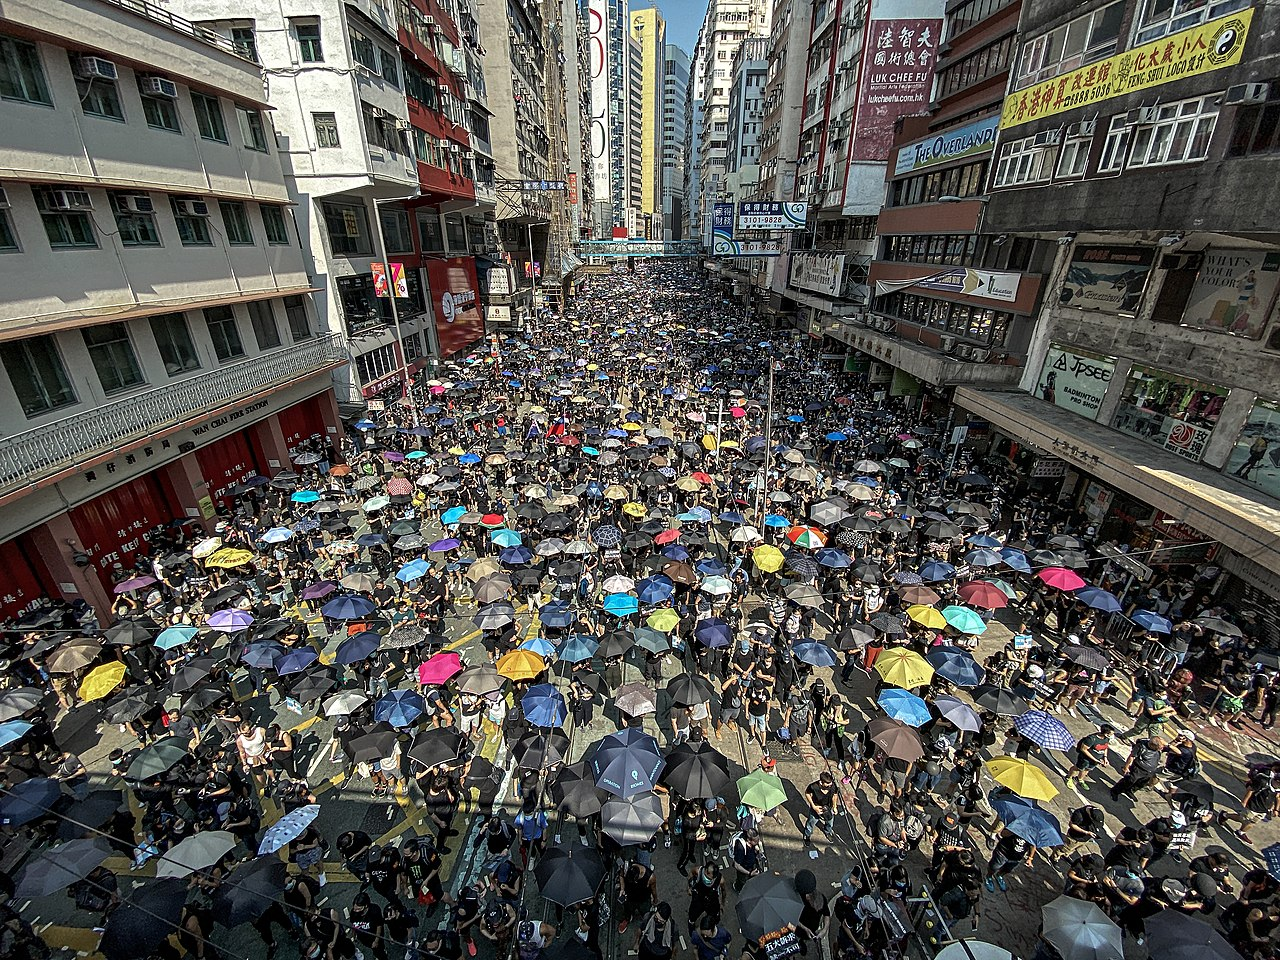 2019-10-01 Demonstration Hong Kong 08.jpg